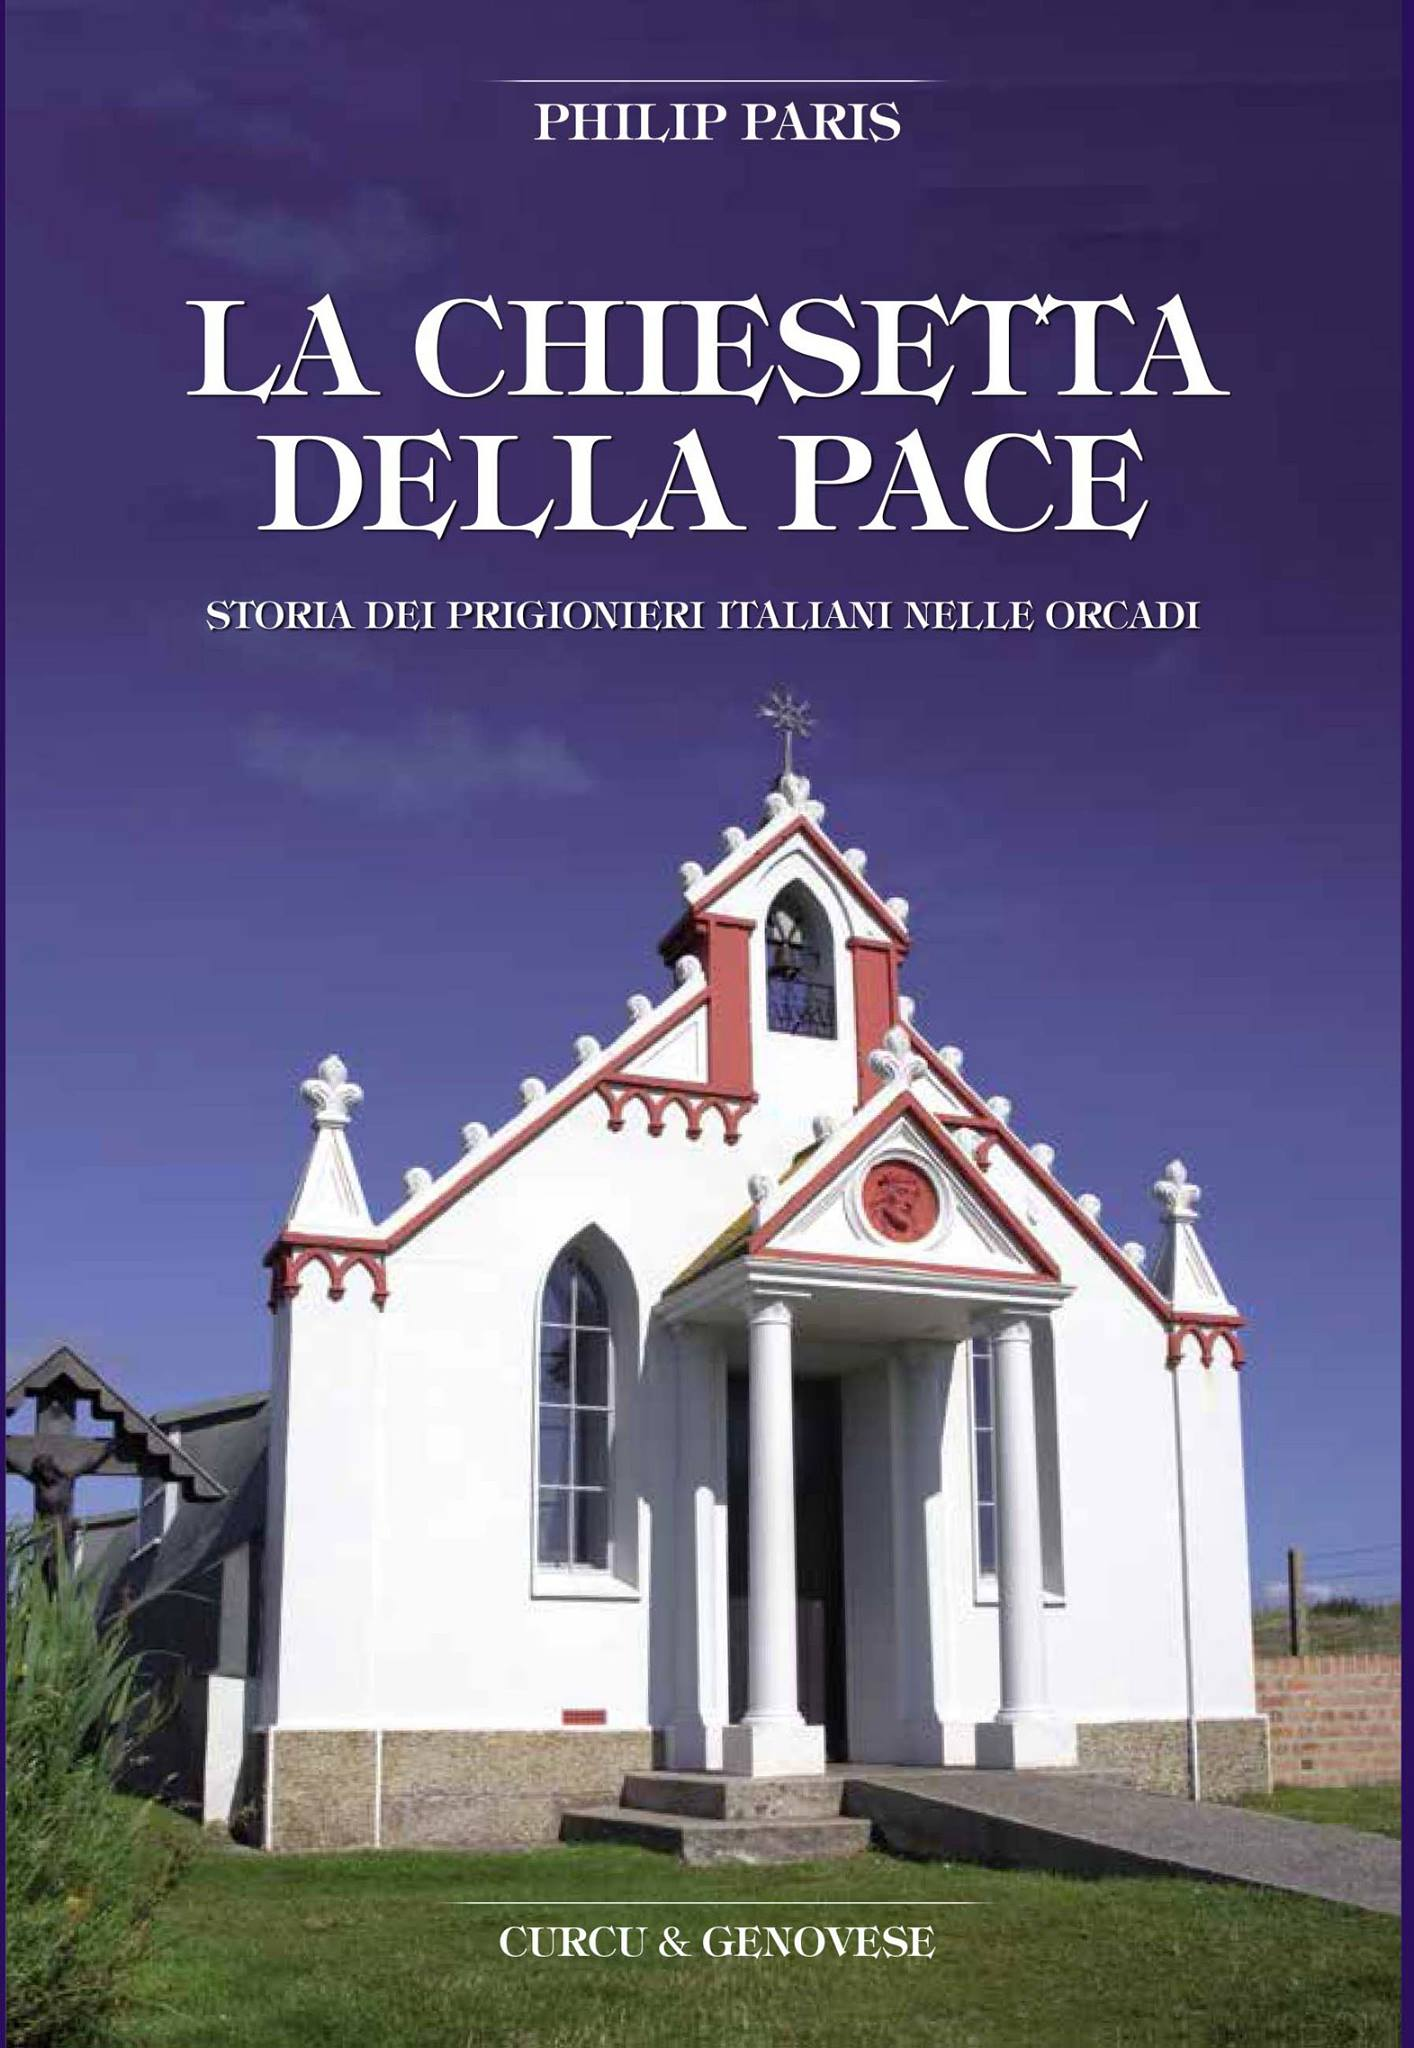 La Chiesetta Della Pace - The Italian Chapel by Philip Paris translated by Inga Sempel